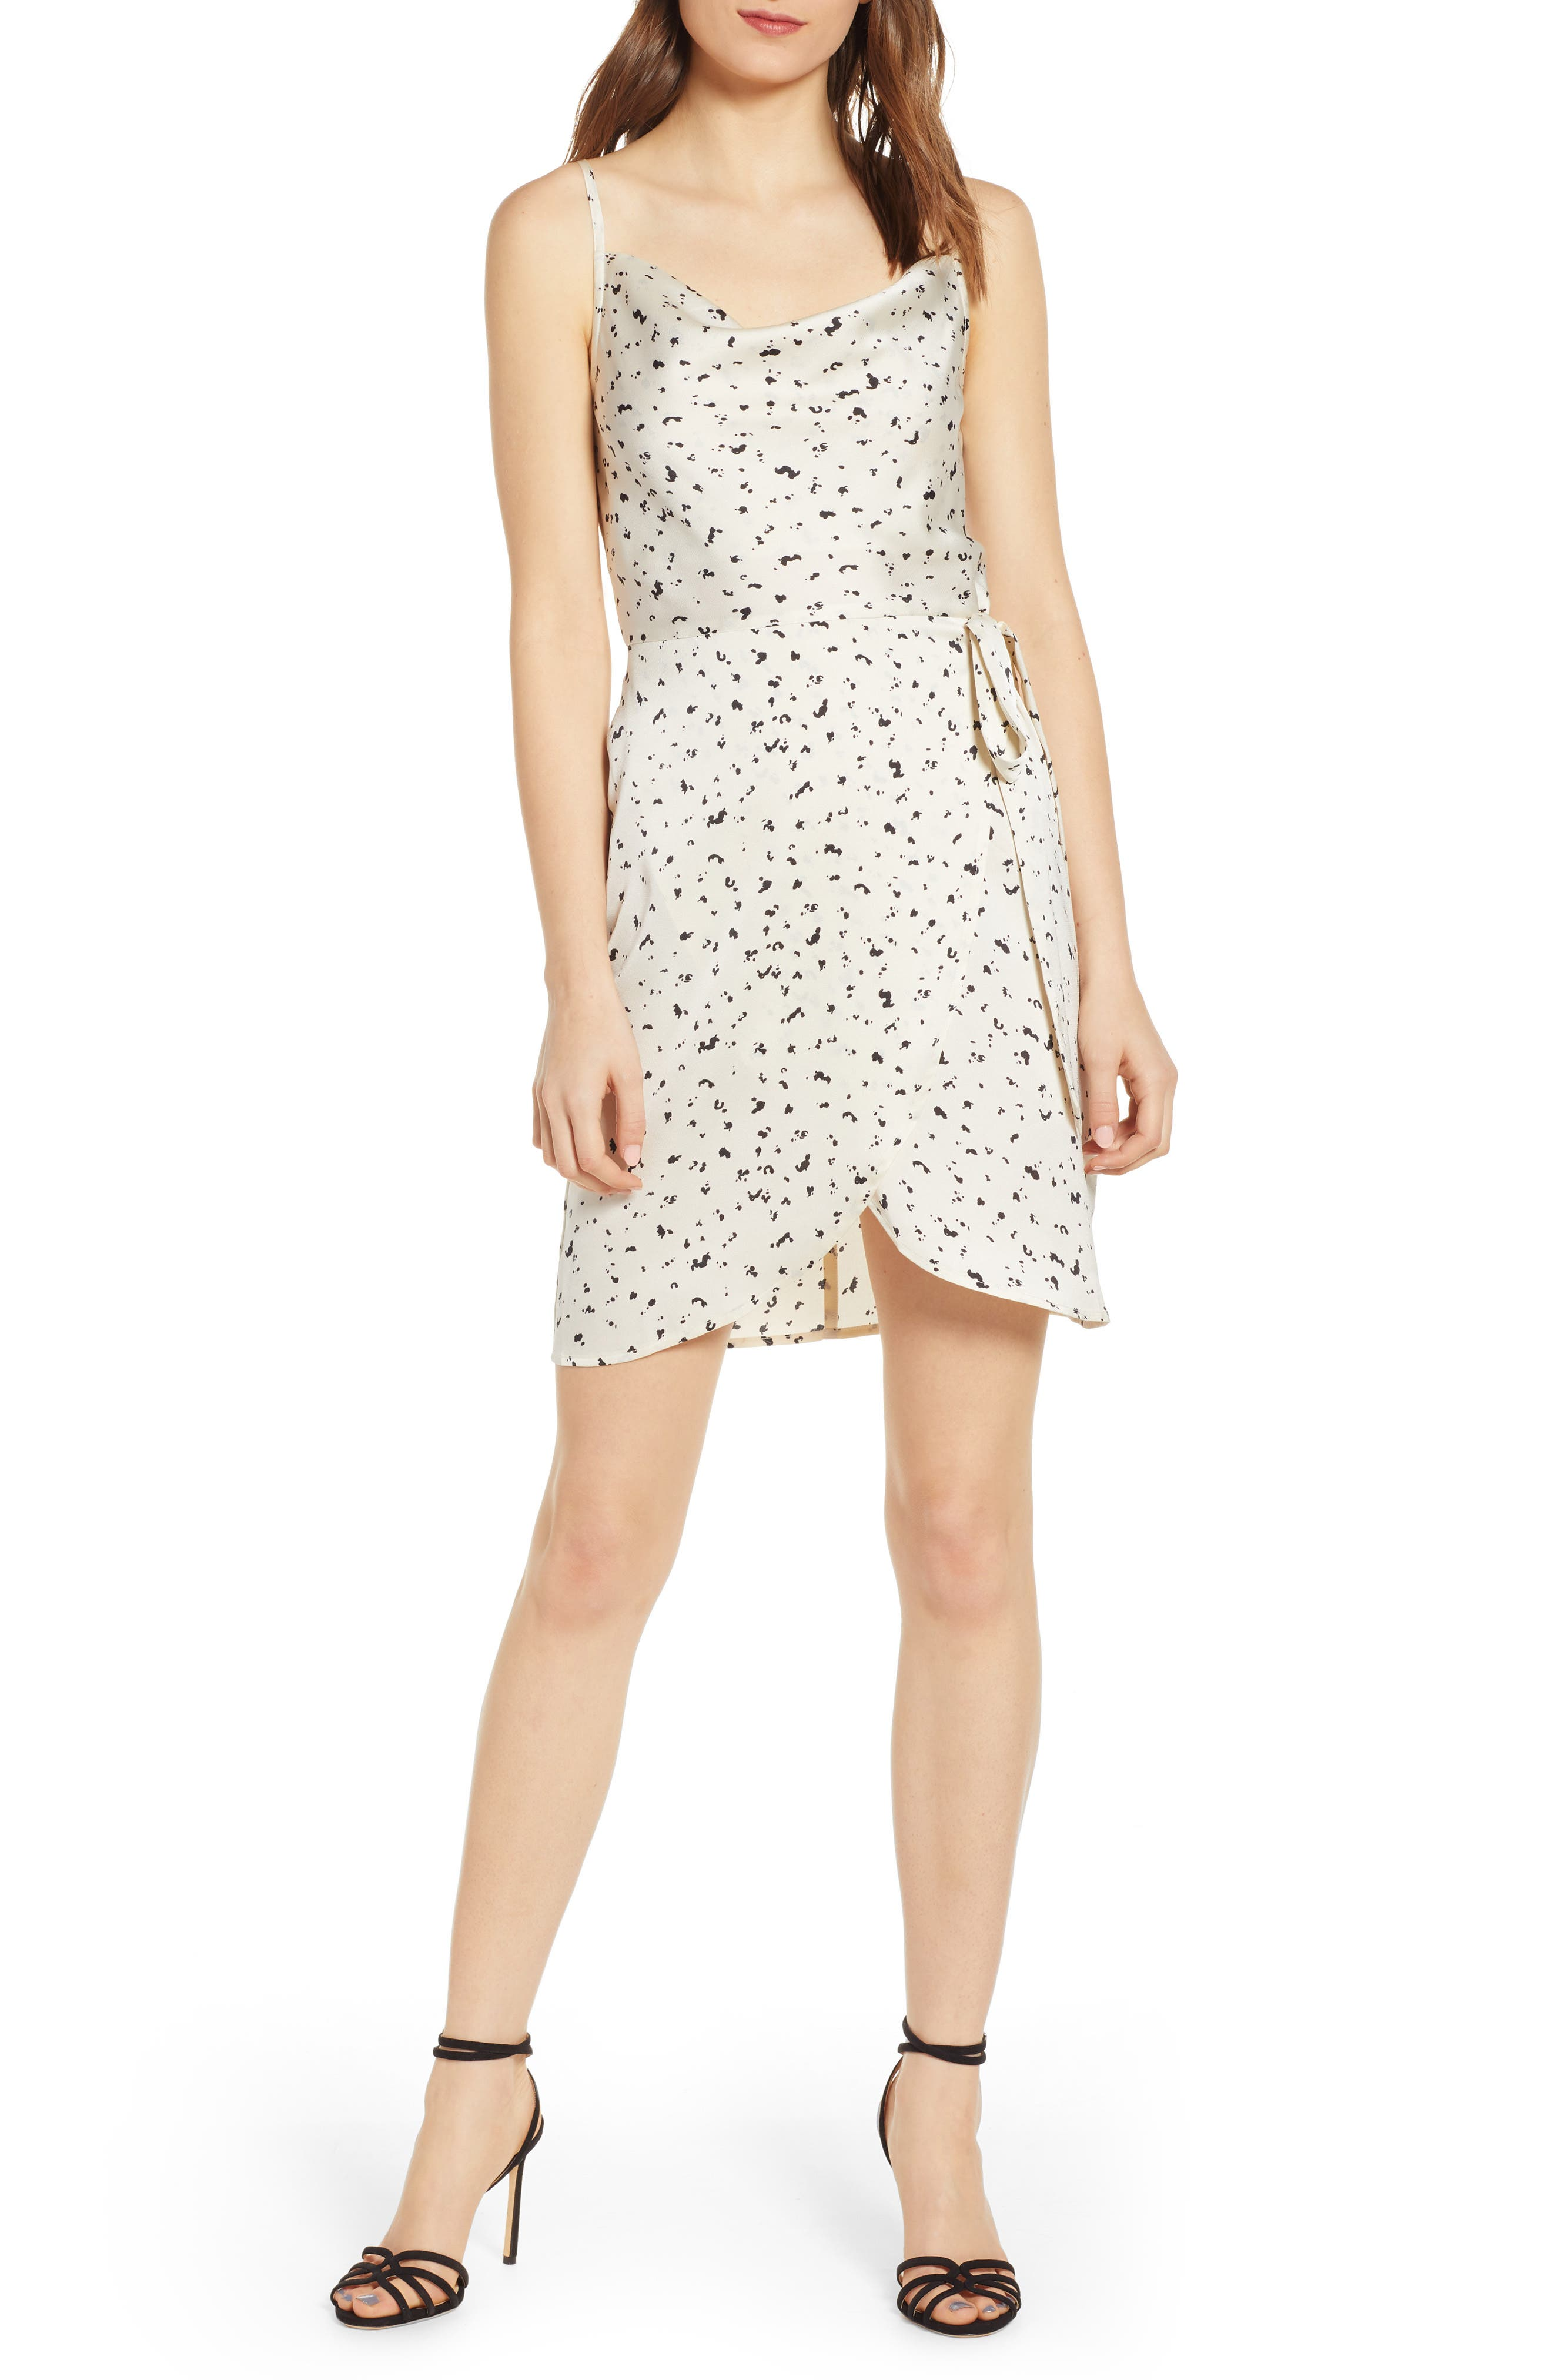 J.o.a. Wrap Slipdress, Ivory